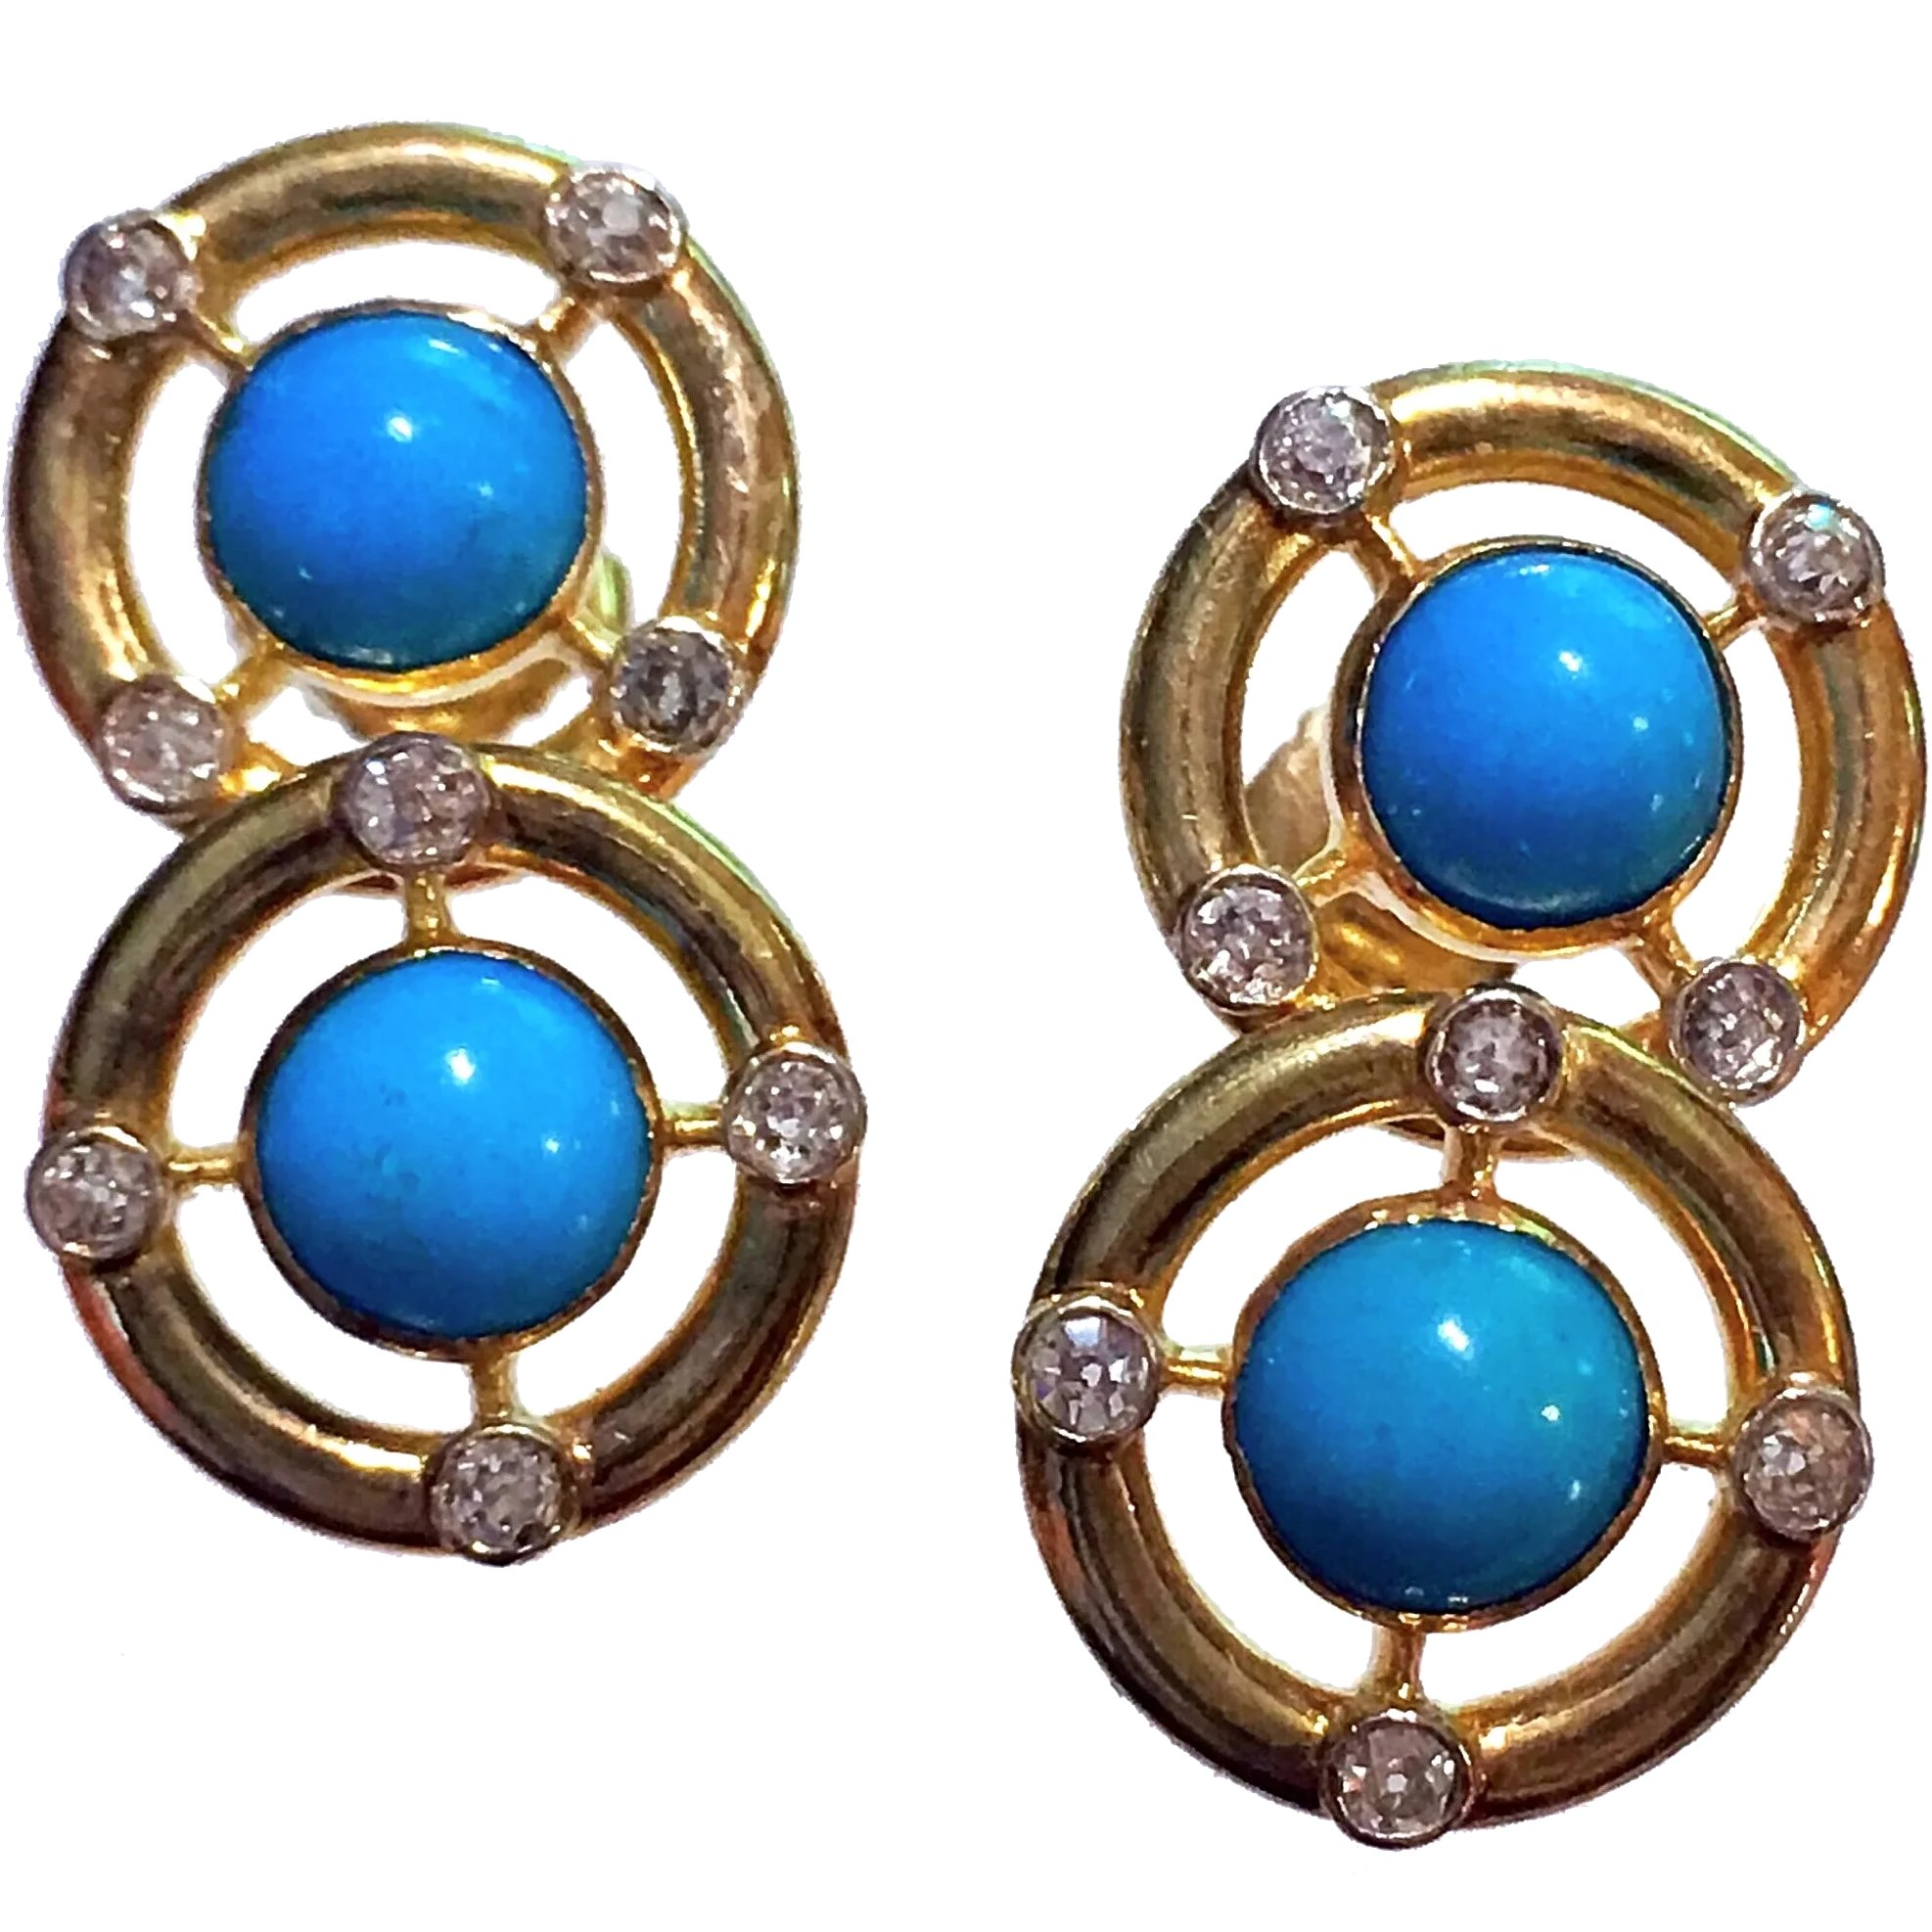 Vintage 14k Gold Turquoise Diamond Earrings Antique Jewelry Expo